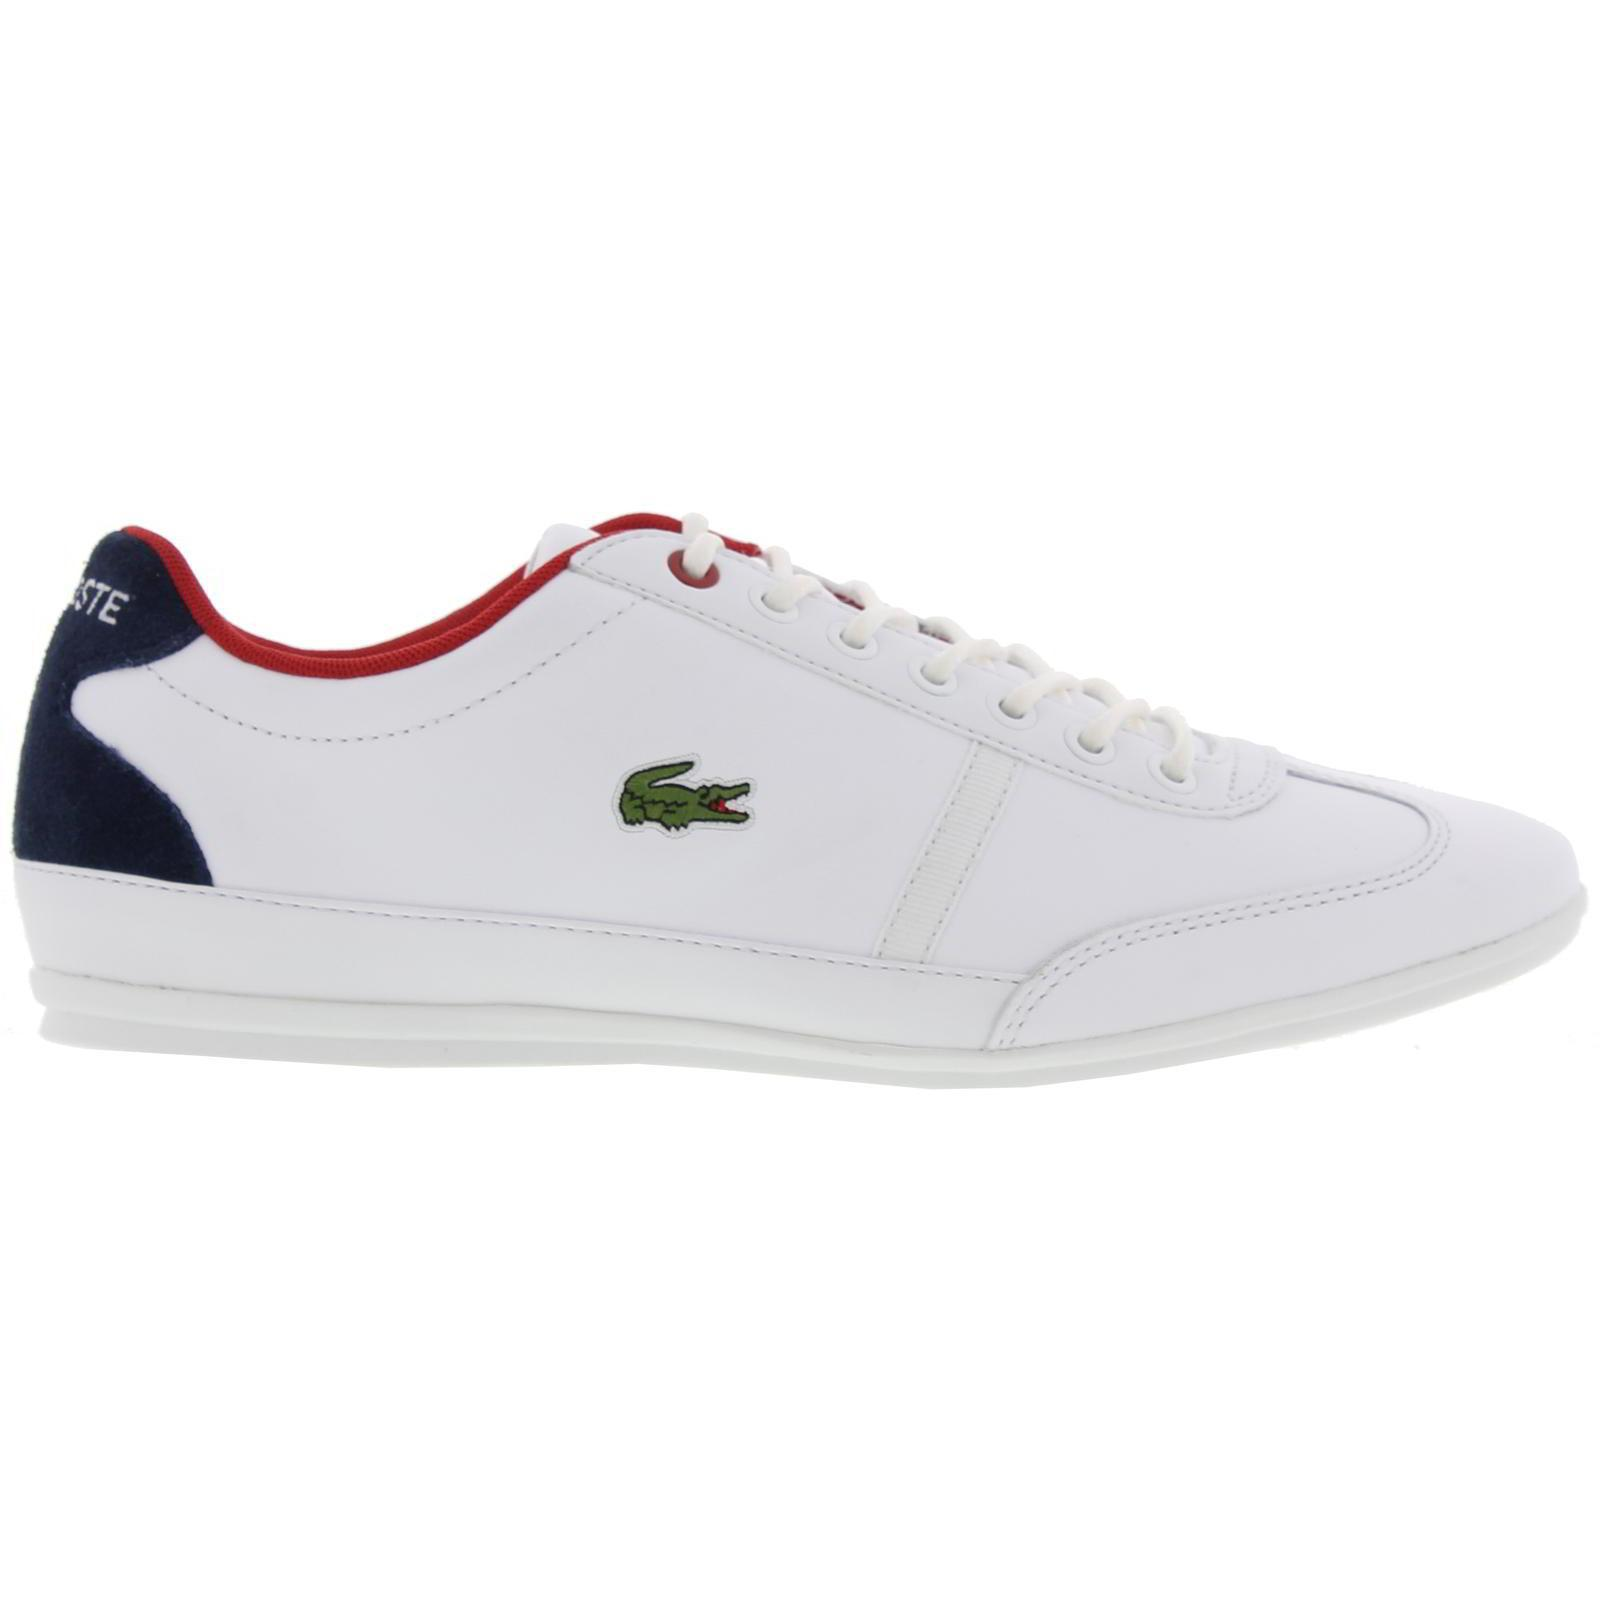 882caf32318180 Lacoste Misano Sport 317 1 Leather Trainers in White for Men - Lyst